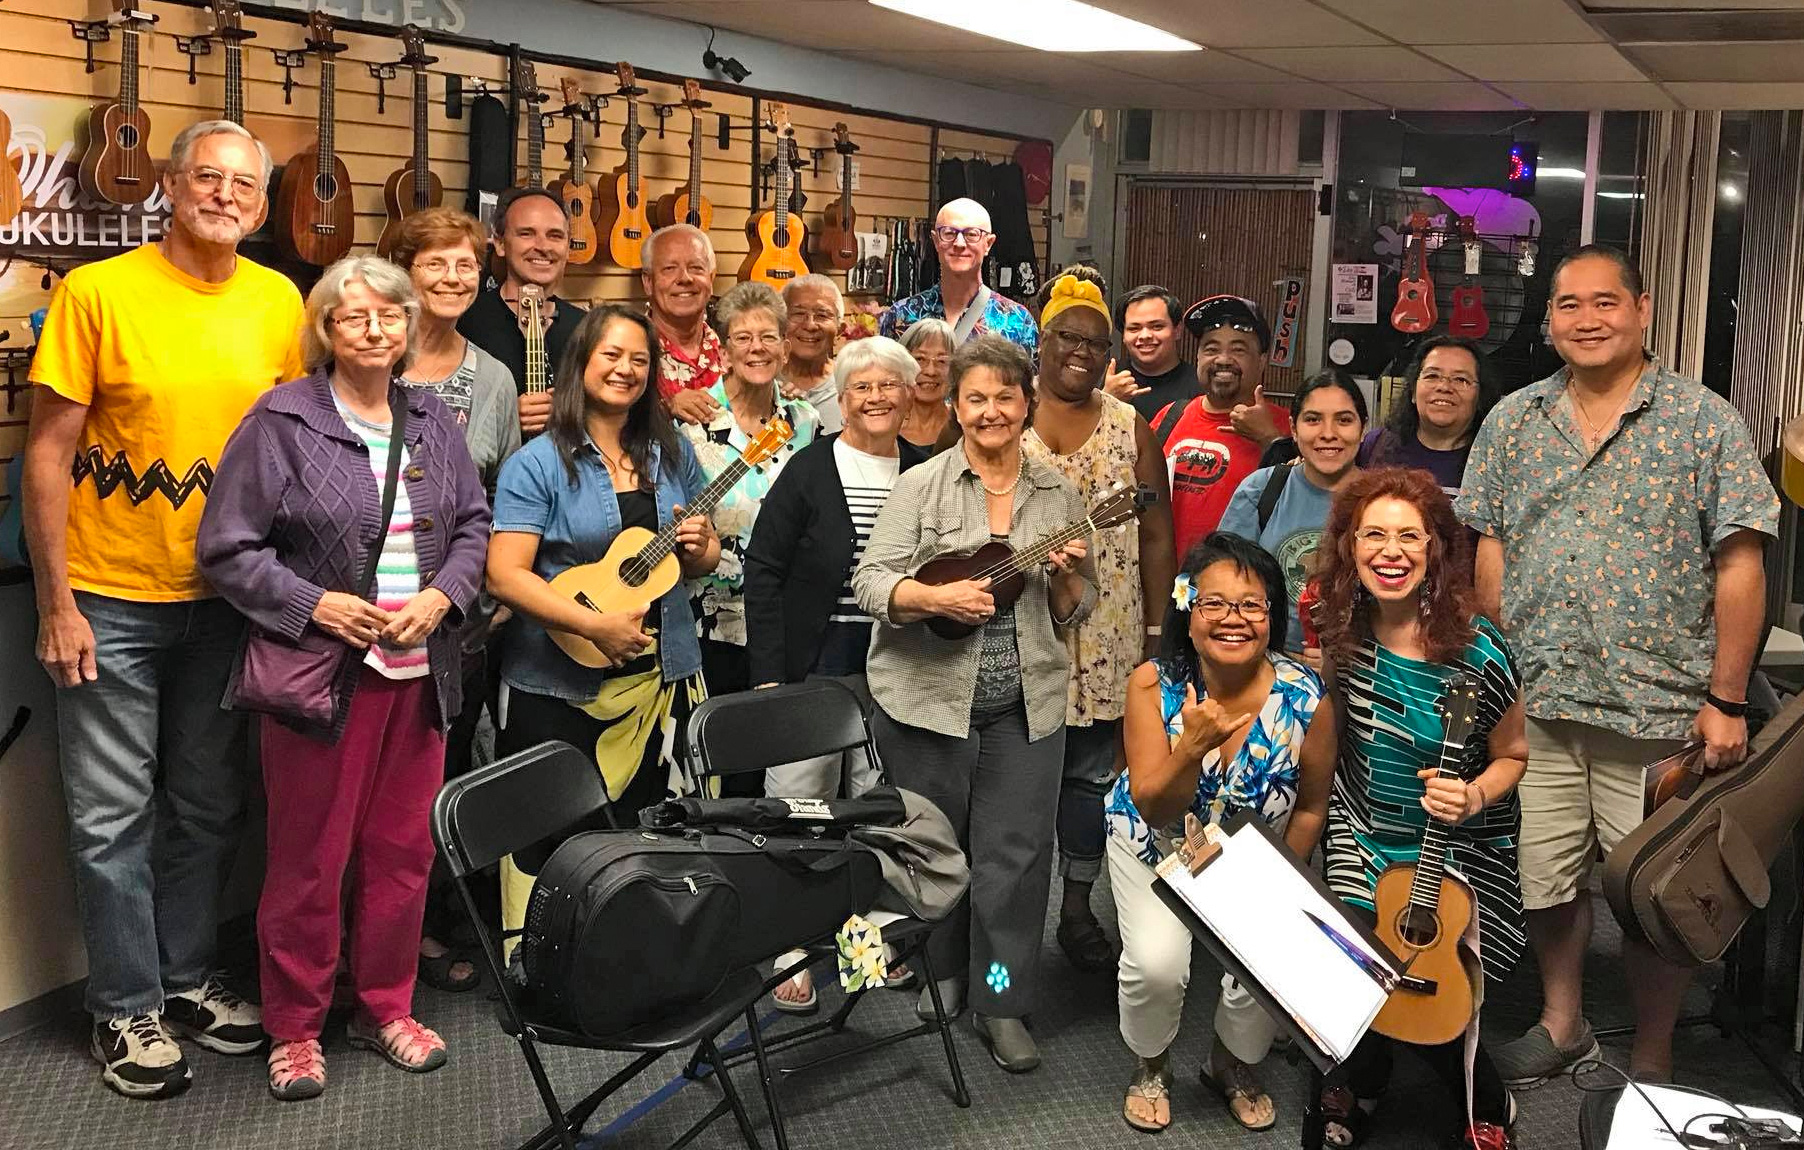 a group of people pose for a picture holding ukuleles